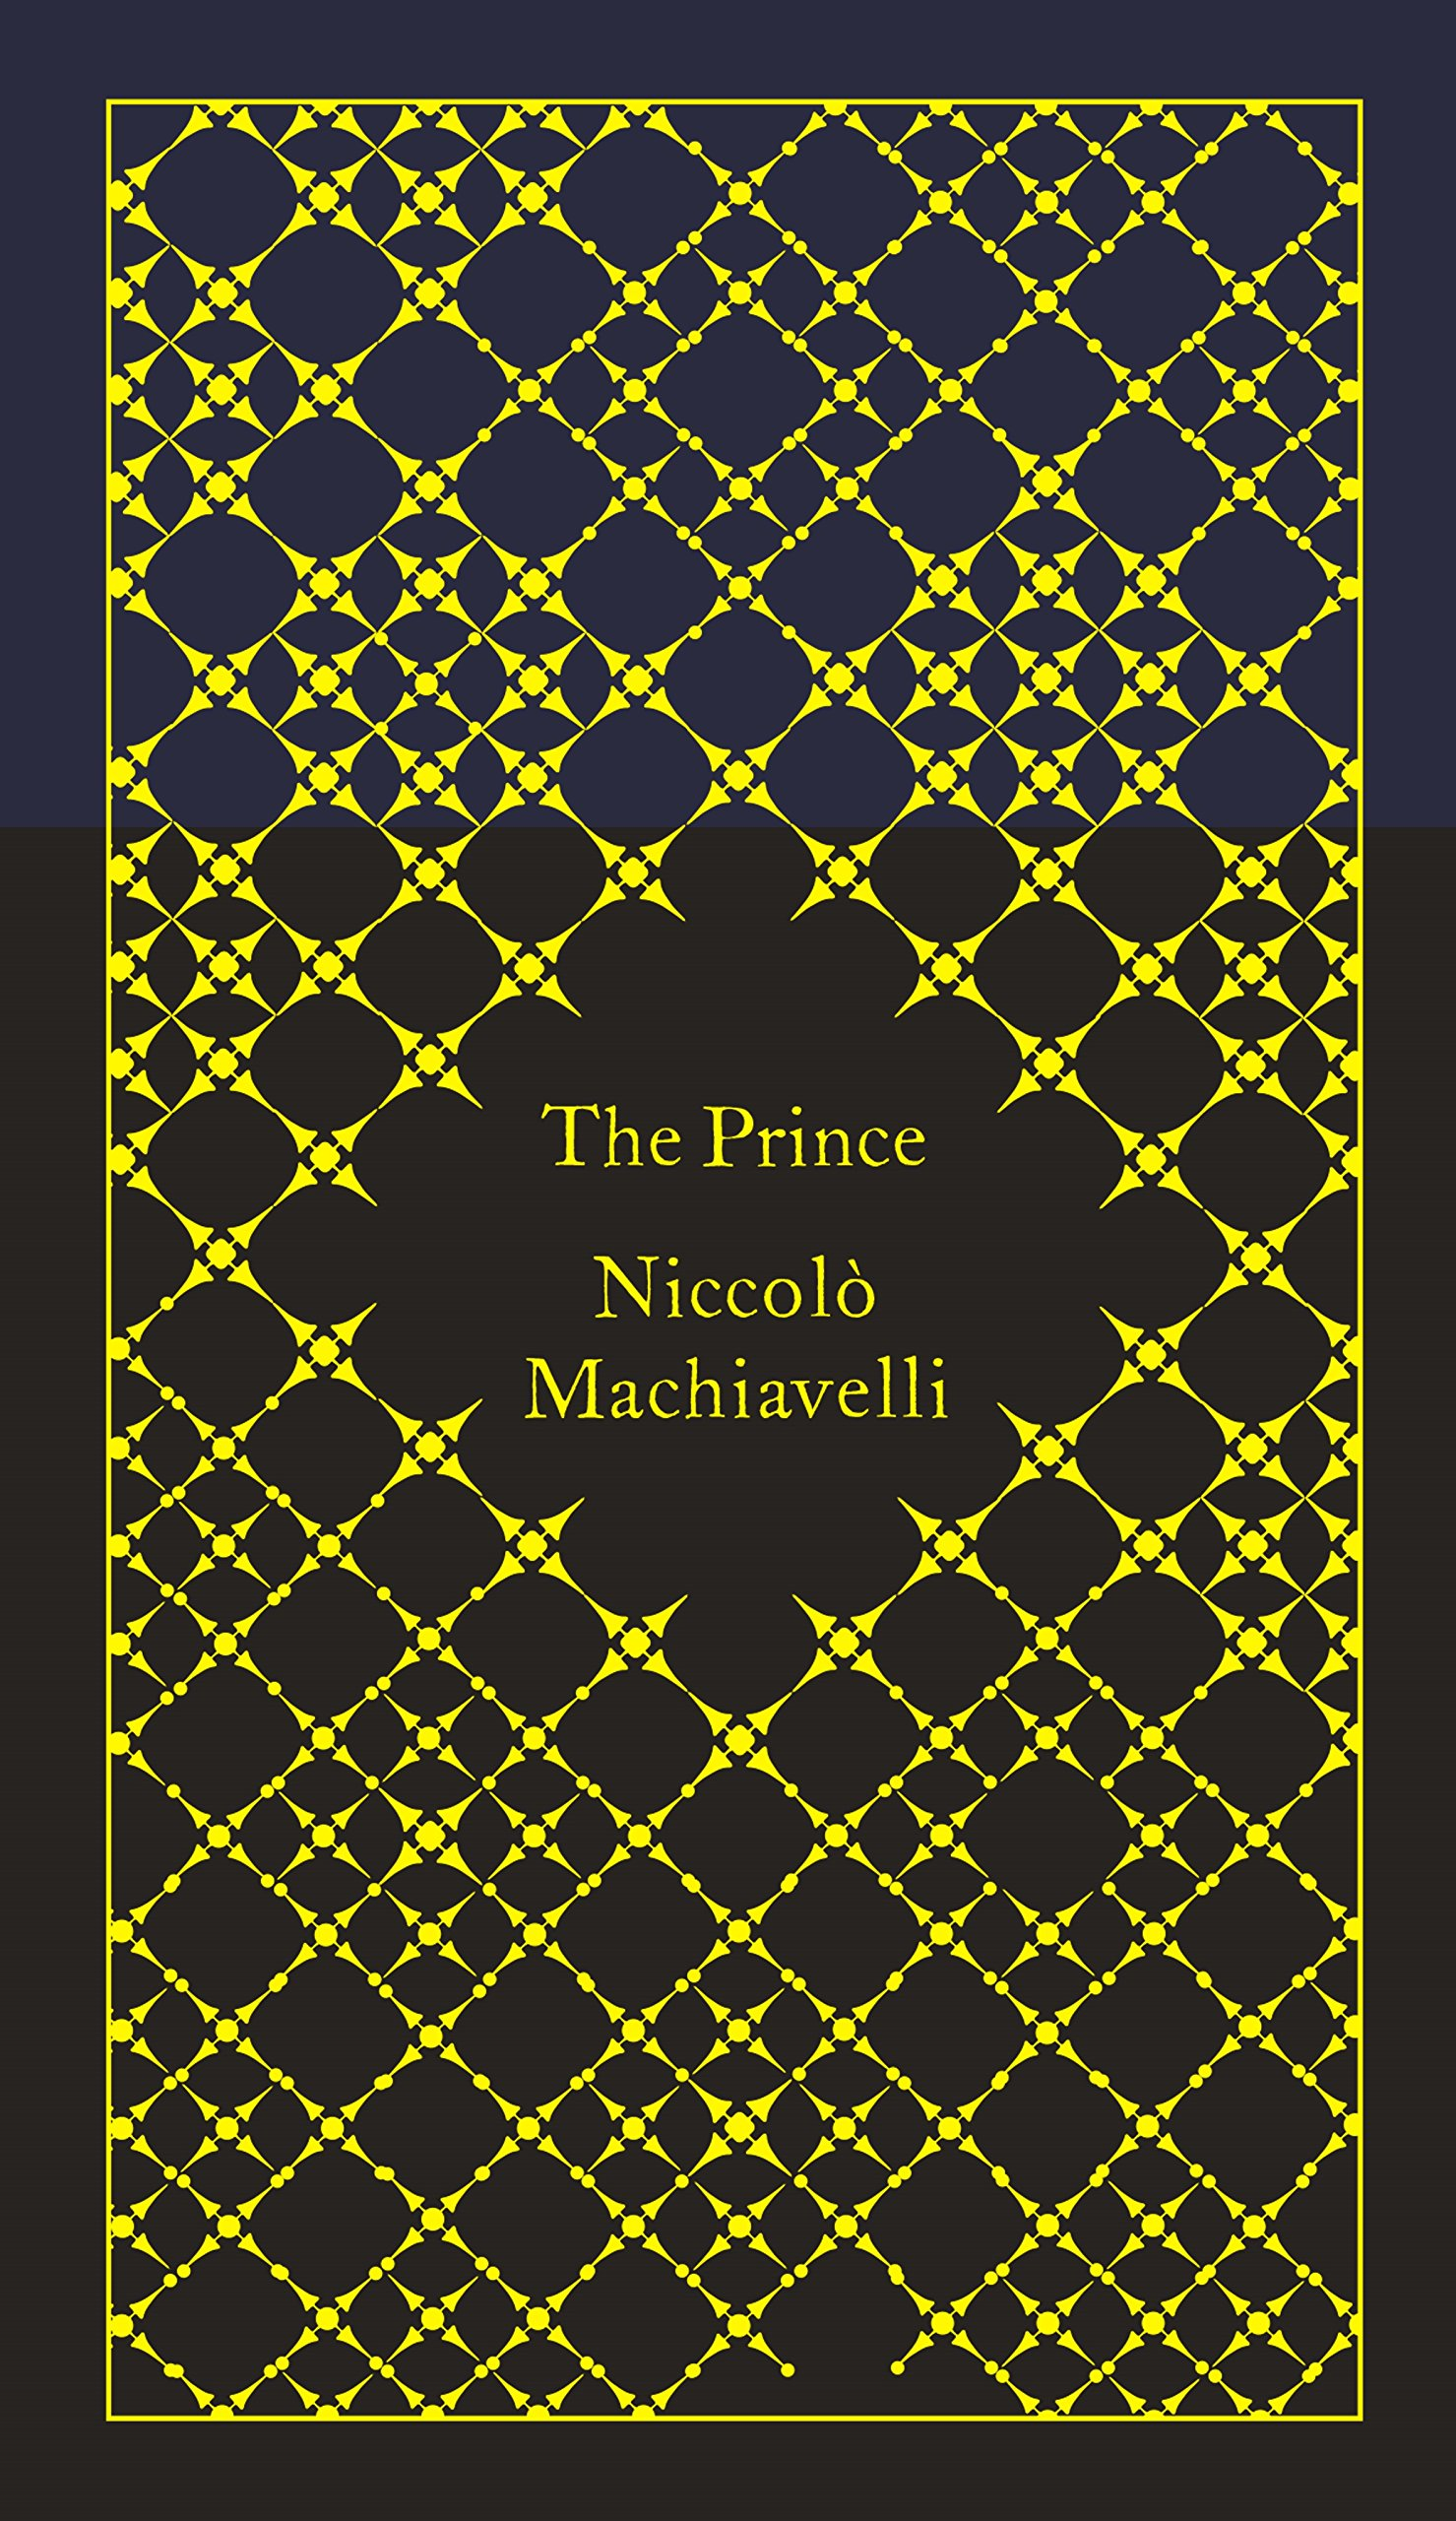 the prince penguin pocket hardbacks co uk niccolo the prince penguin pocket hardbacks co uk niccolo machiavelli tim parks 9780141395876 books